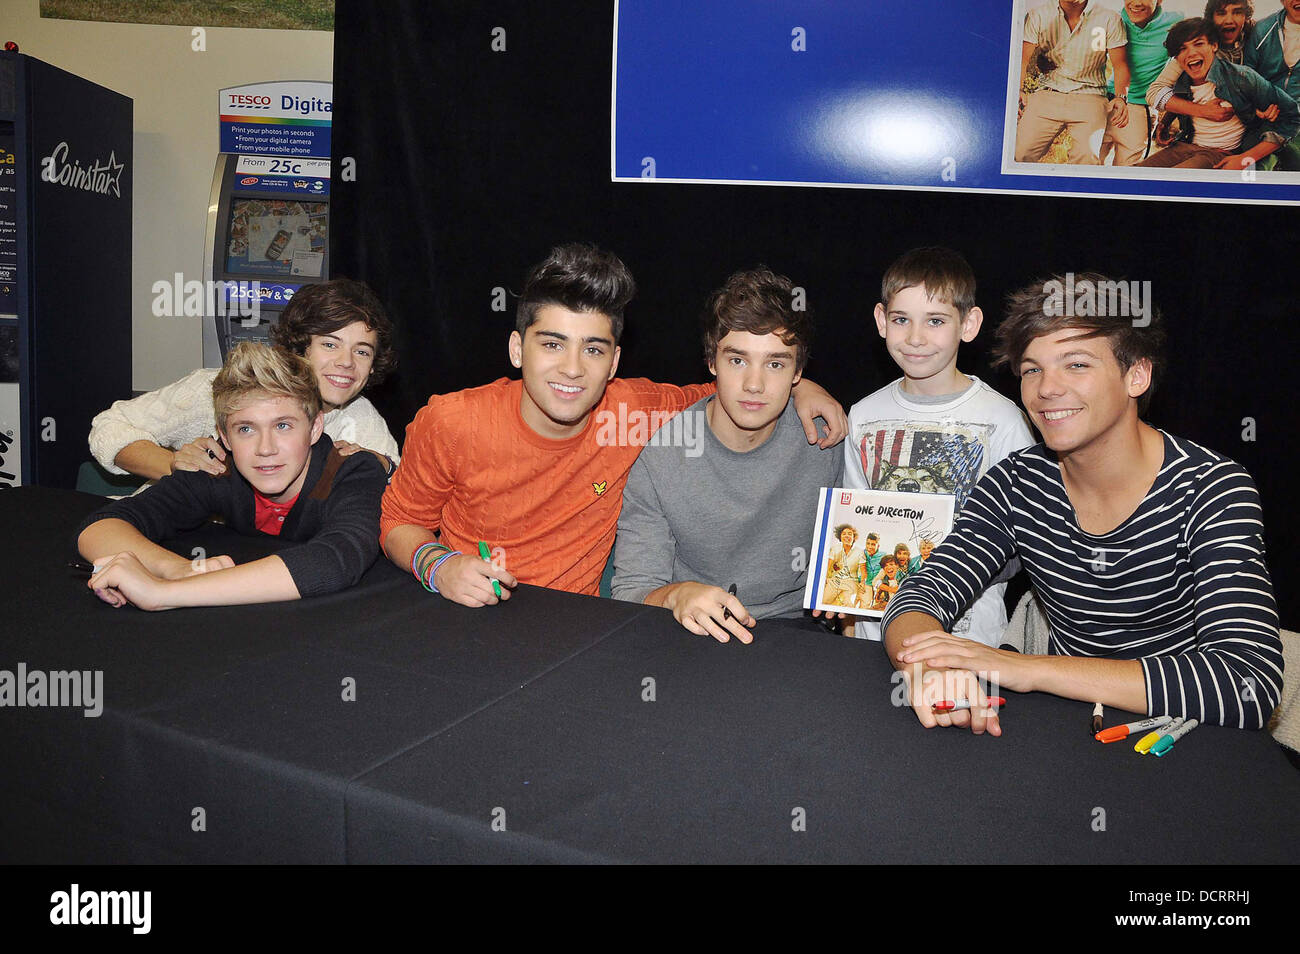 Uncategorized Free One Direction Games harry styles niall horan zayn malik liam payne and louis tomlinson one direction